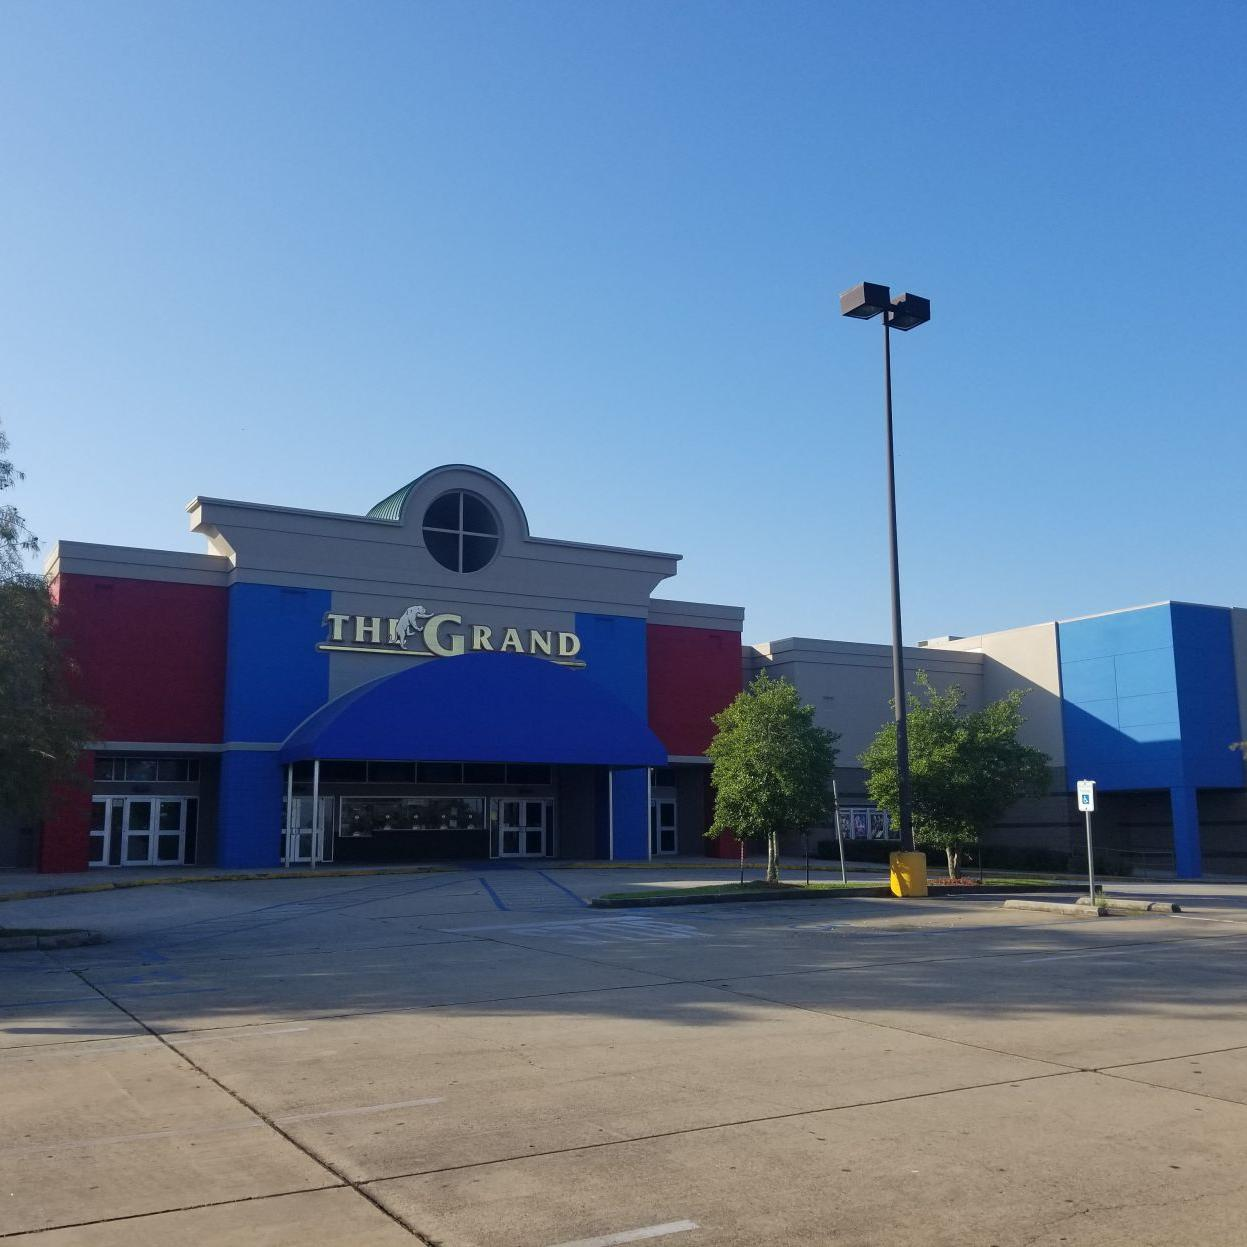 Limited Options Available To Lafayette Moviegoers As Theaters Delay Full Public Reopenings Business Theadvocate Com Mobile, print, kiosk see details. lafayette moviegoers as theaters delay